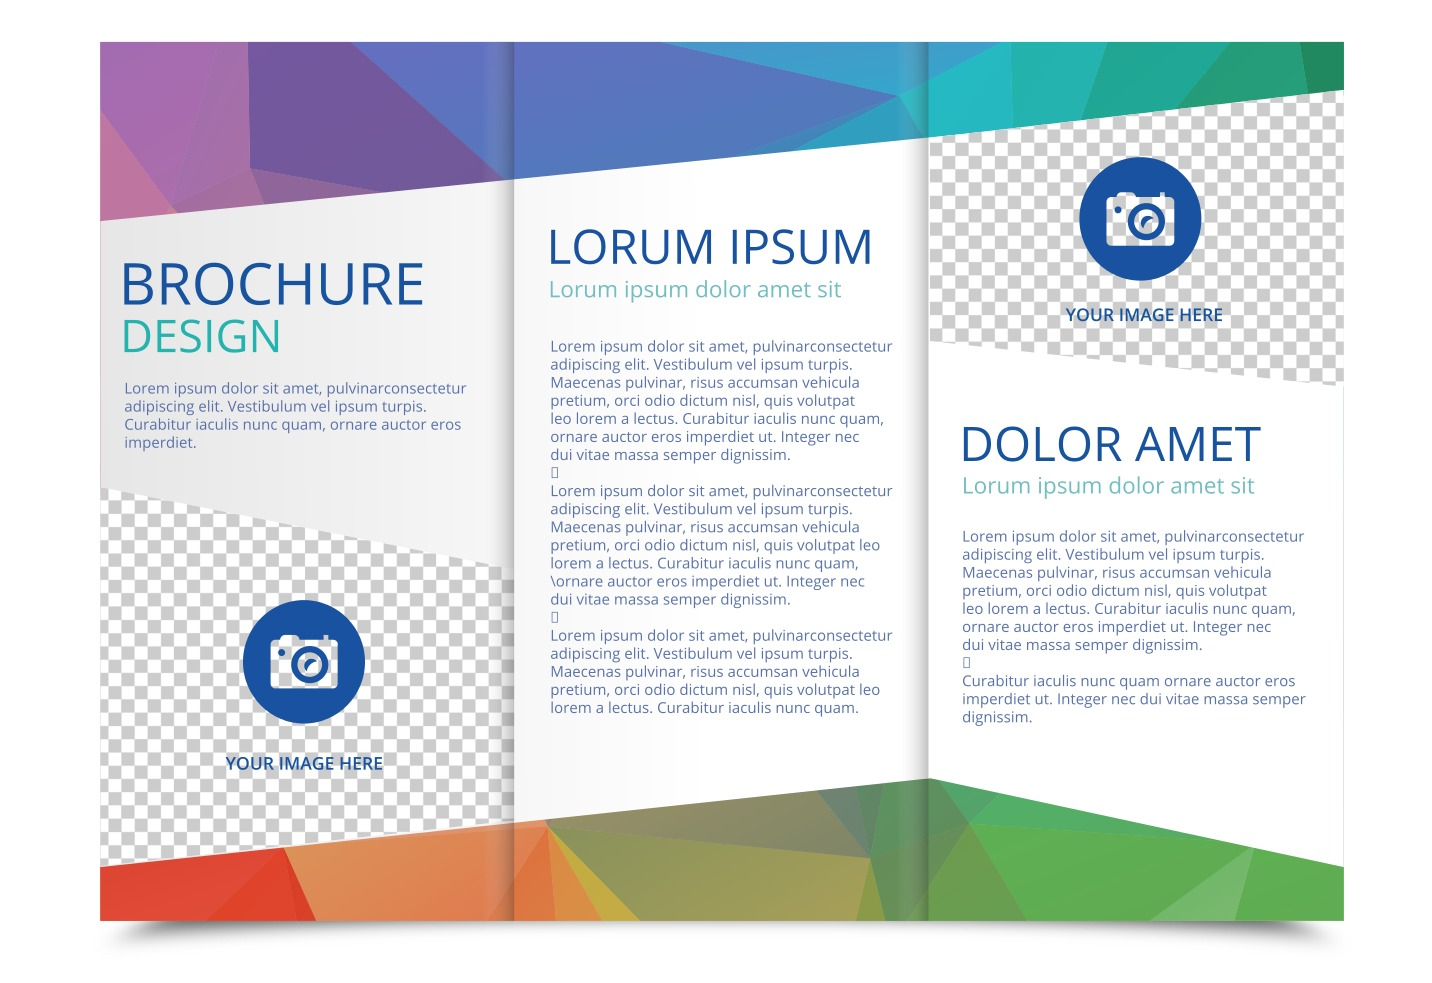 Free Tri Fold Brochure Vector Template Download Free Vector Art - Trifold brochure template